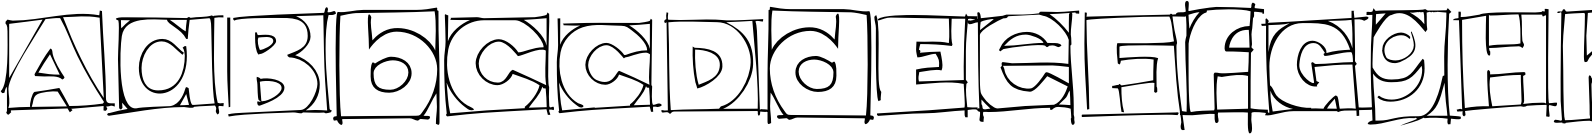 Doodles The Alphabet